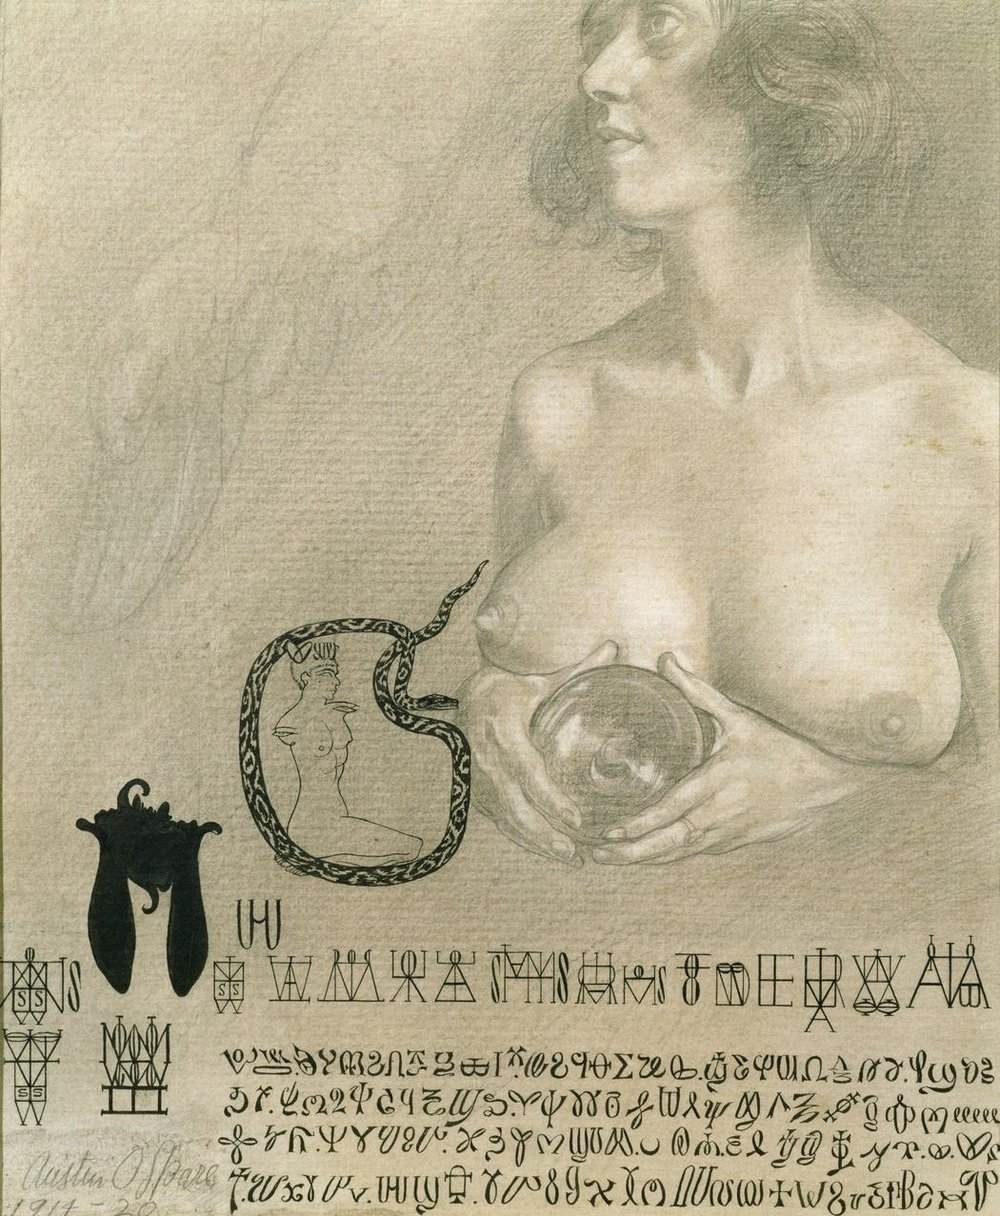 1496422745132-image-7-Nude-Holding-a-Crystal-Ball-1914-20-pencil-pen-and-ink-on-paper.jpeg